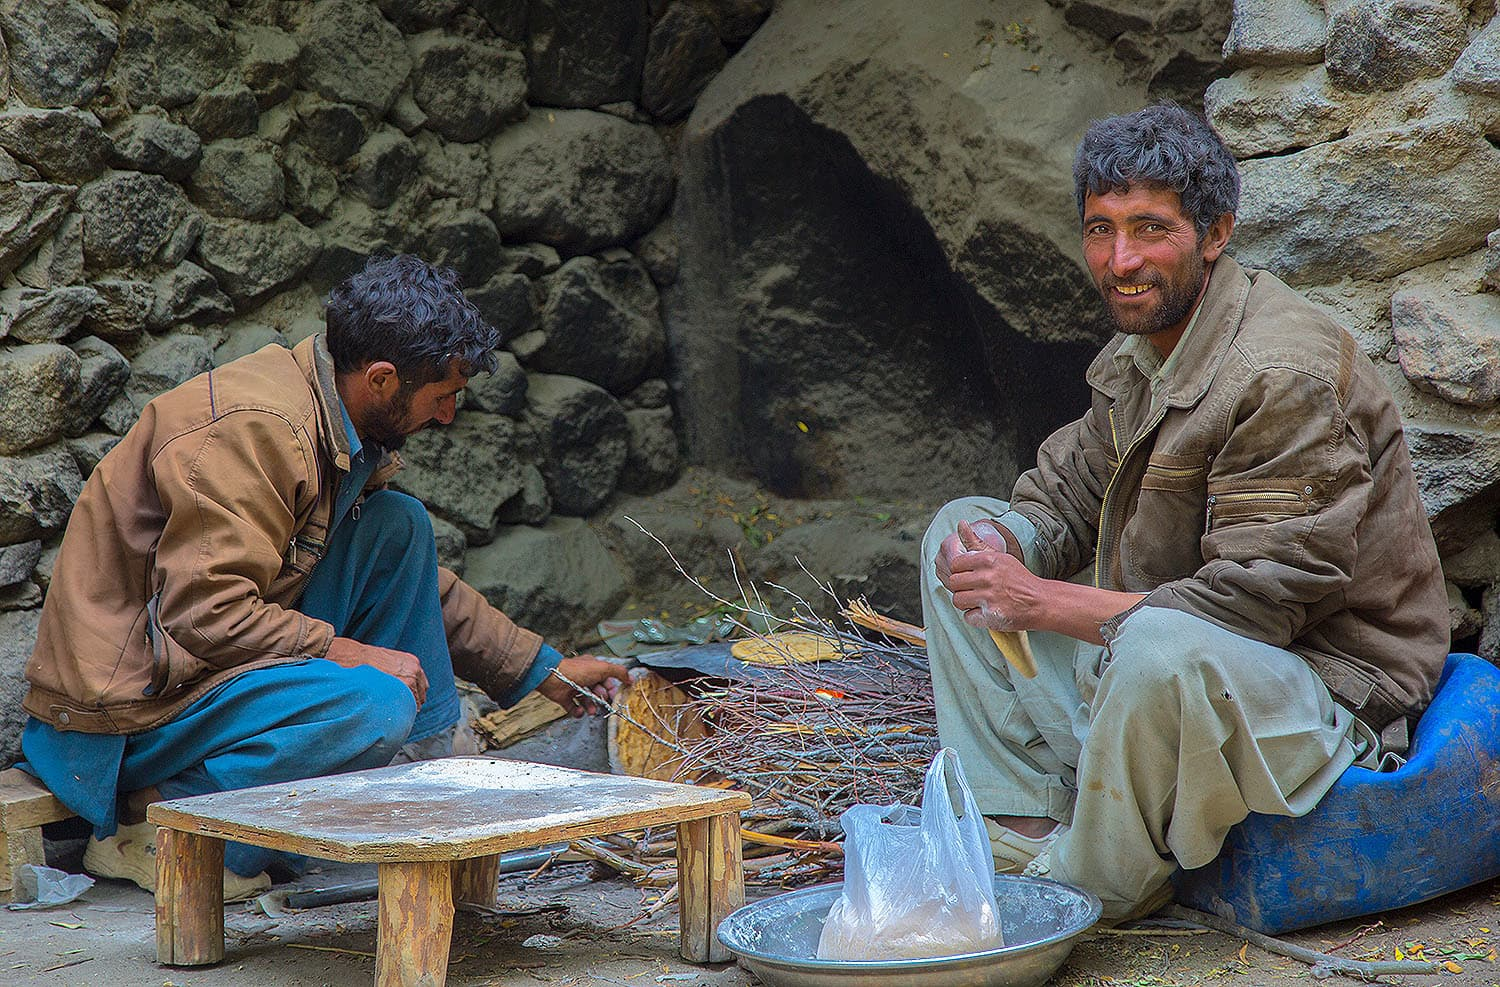 Porters make special bread for us at the Payu camp; they serve pretty good green tea there as well!